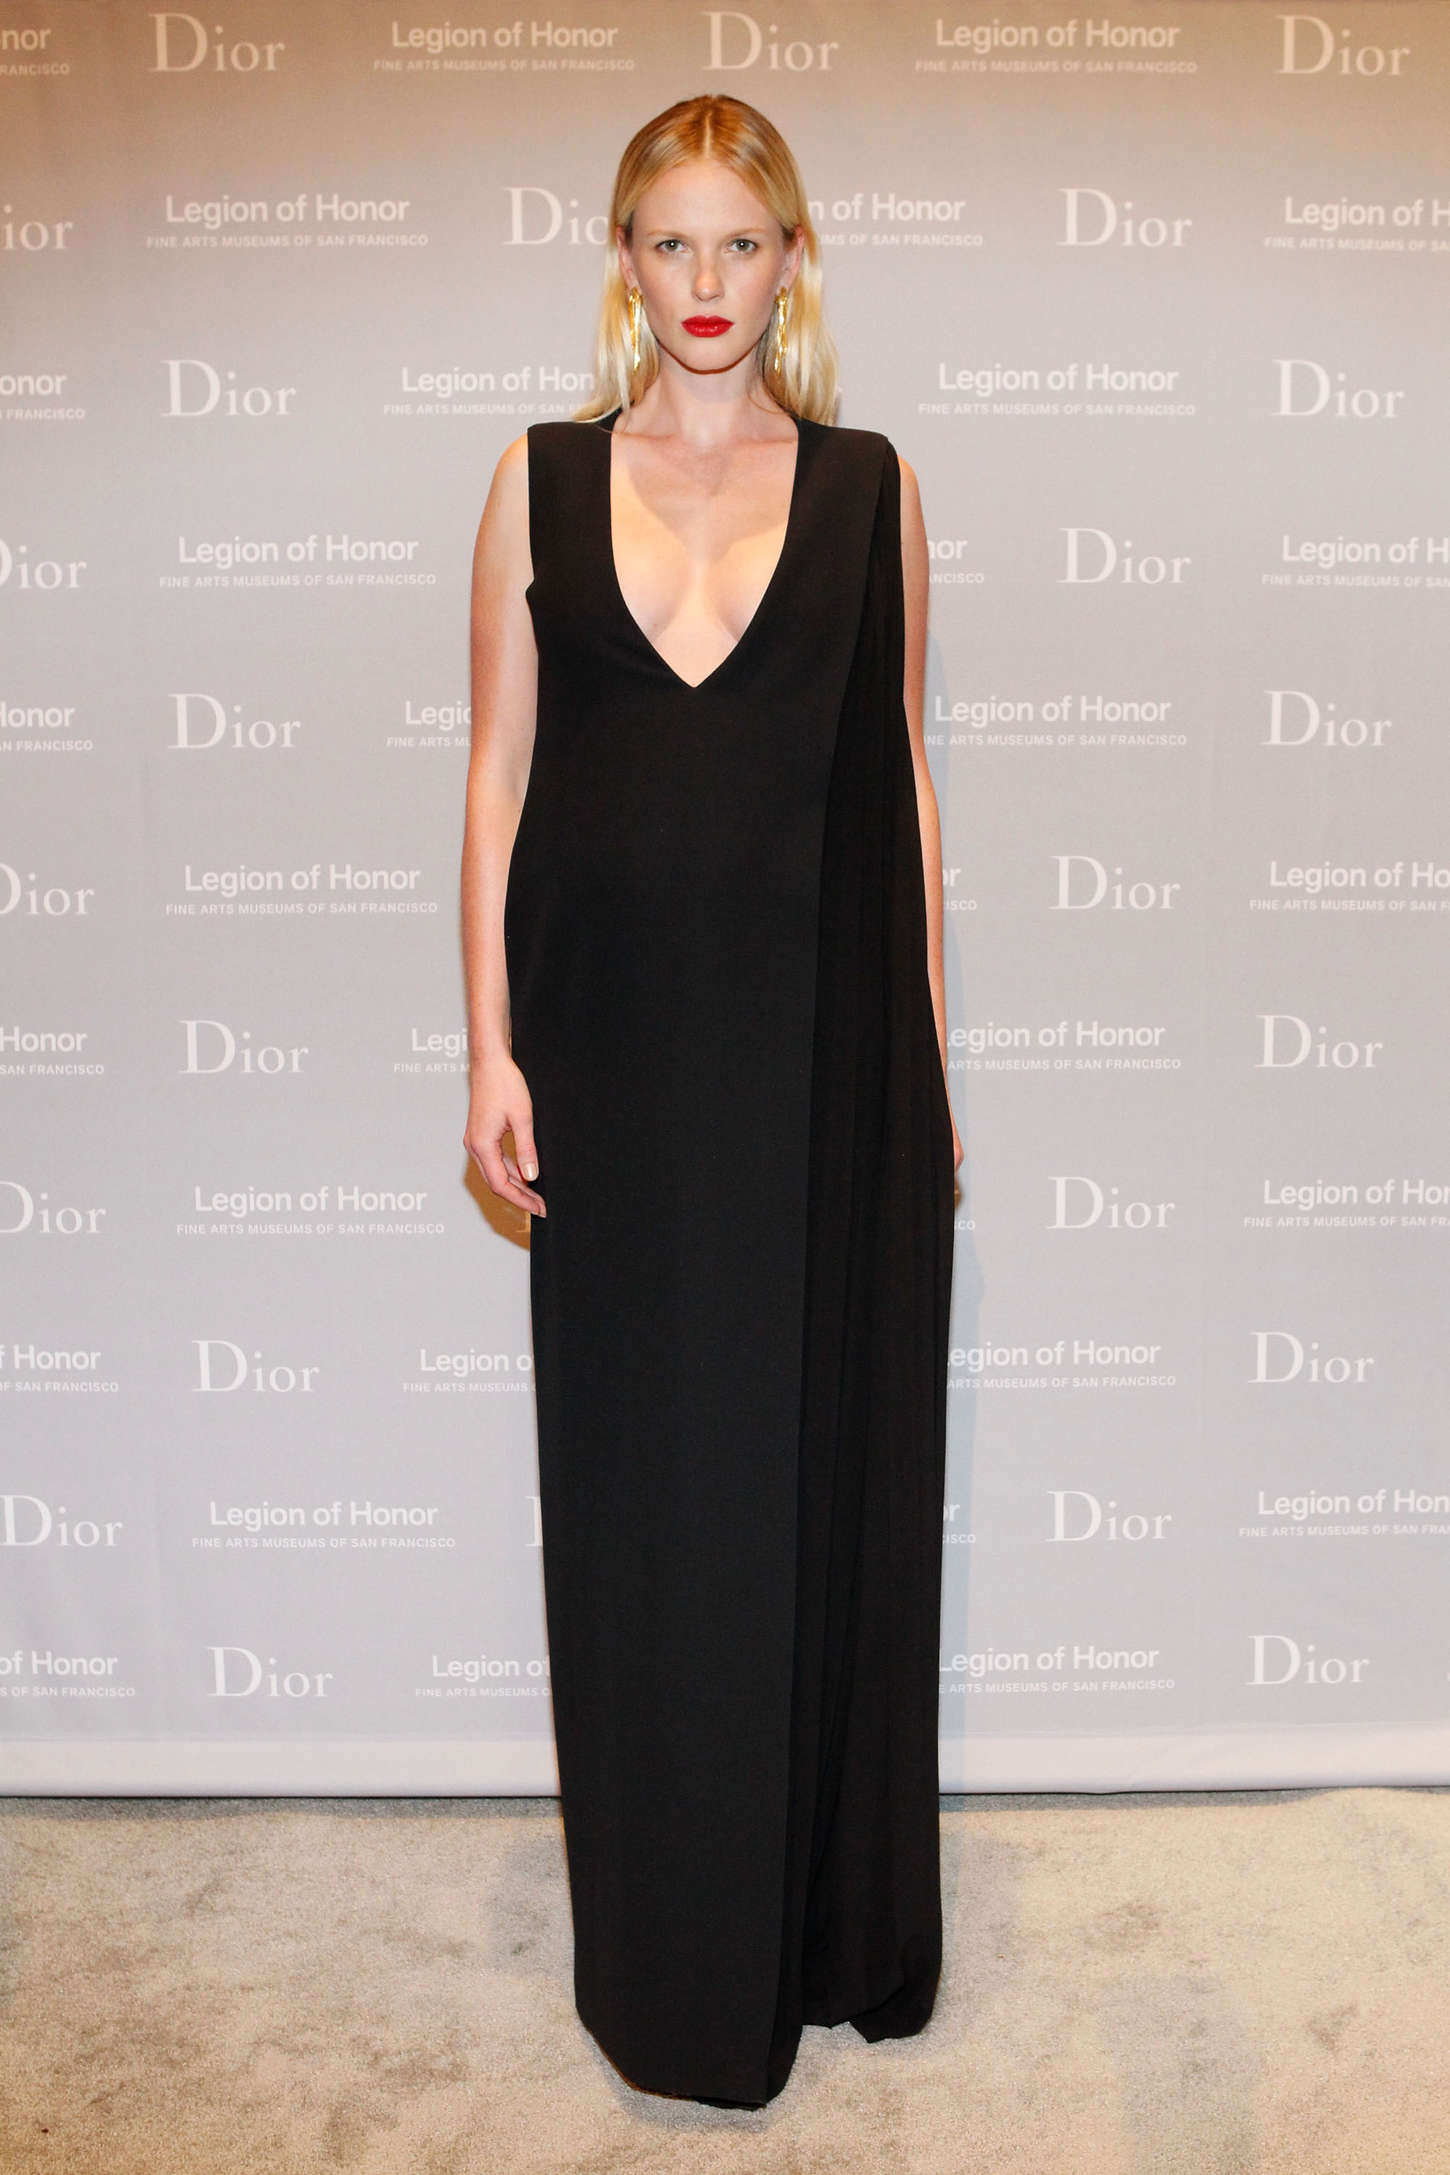 Anne Vyalitsyna Mid-Winter Gala presented by Dior in San Francisco